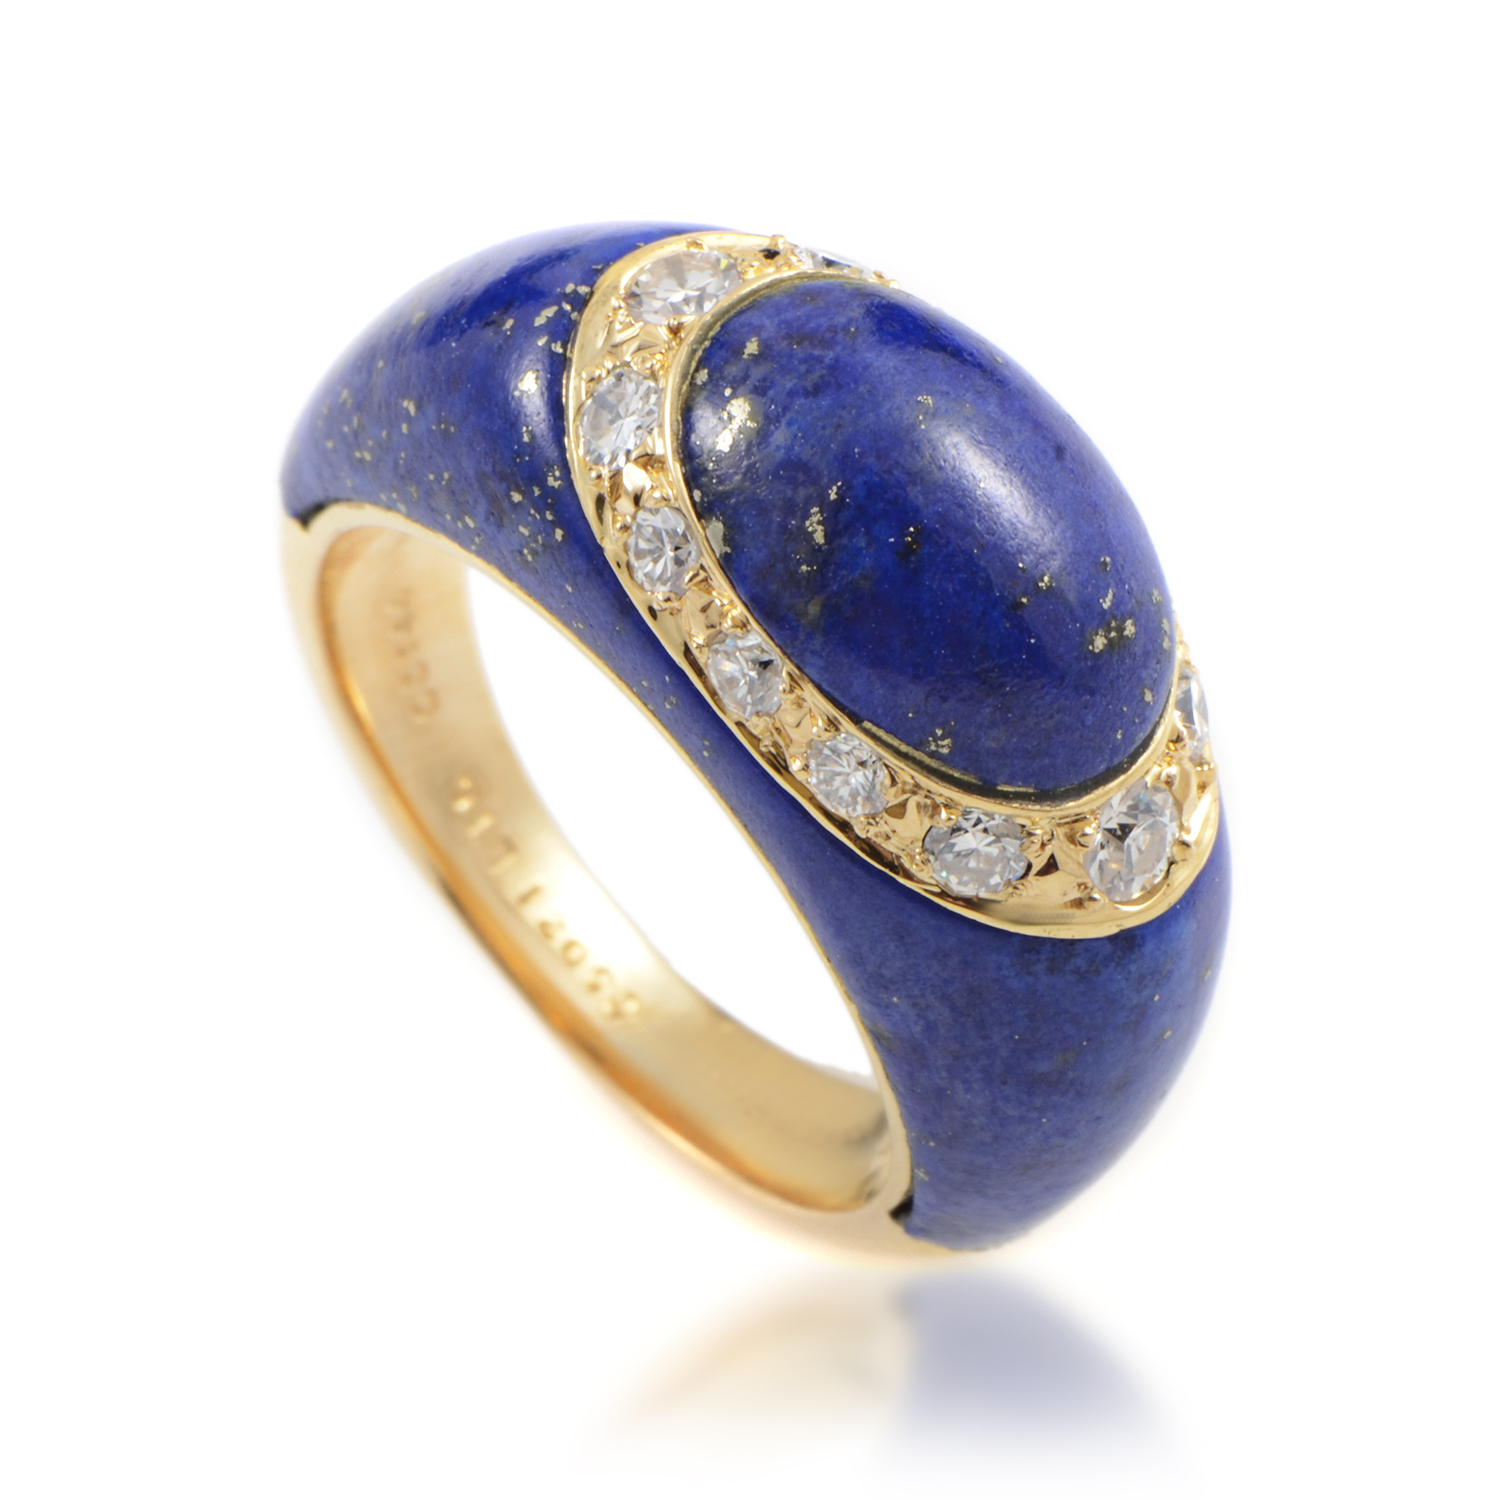 Van Cleef & Arpels Women's 18K Yellow Gold Diamond & Lapis Lazuli Ring